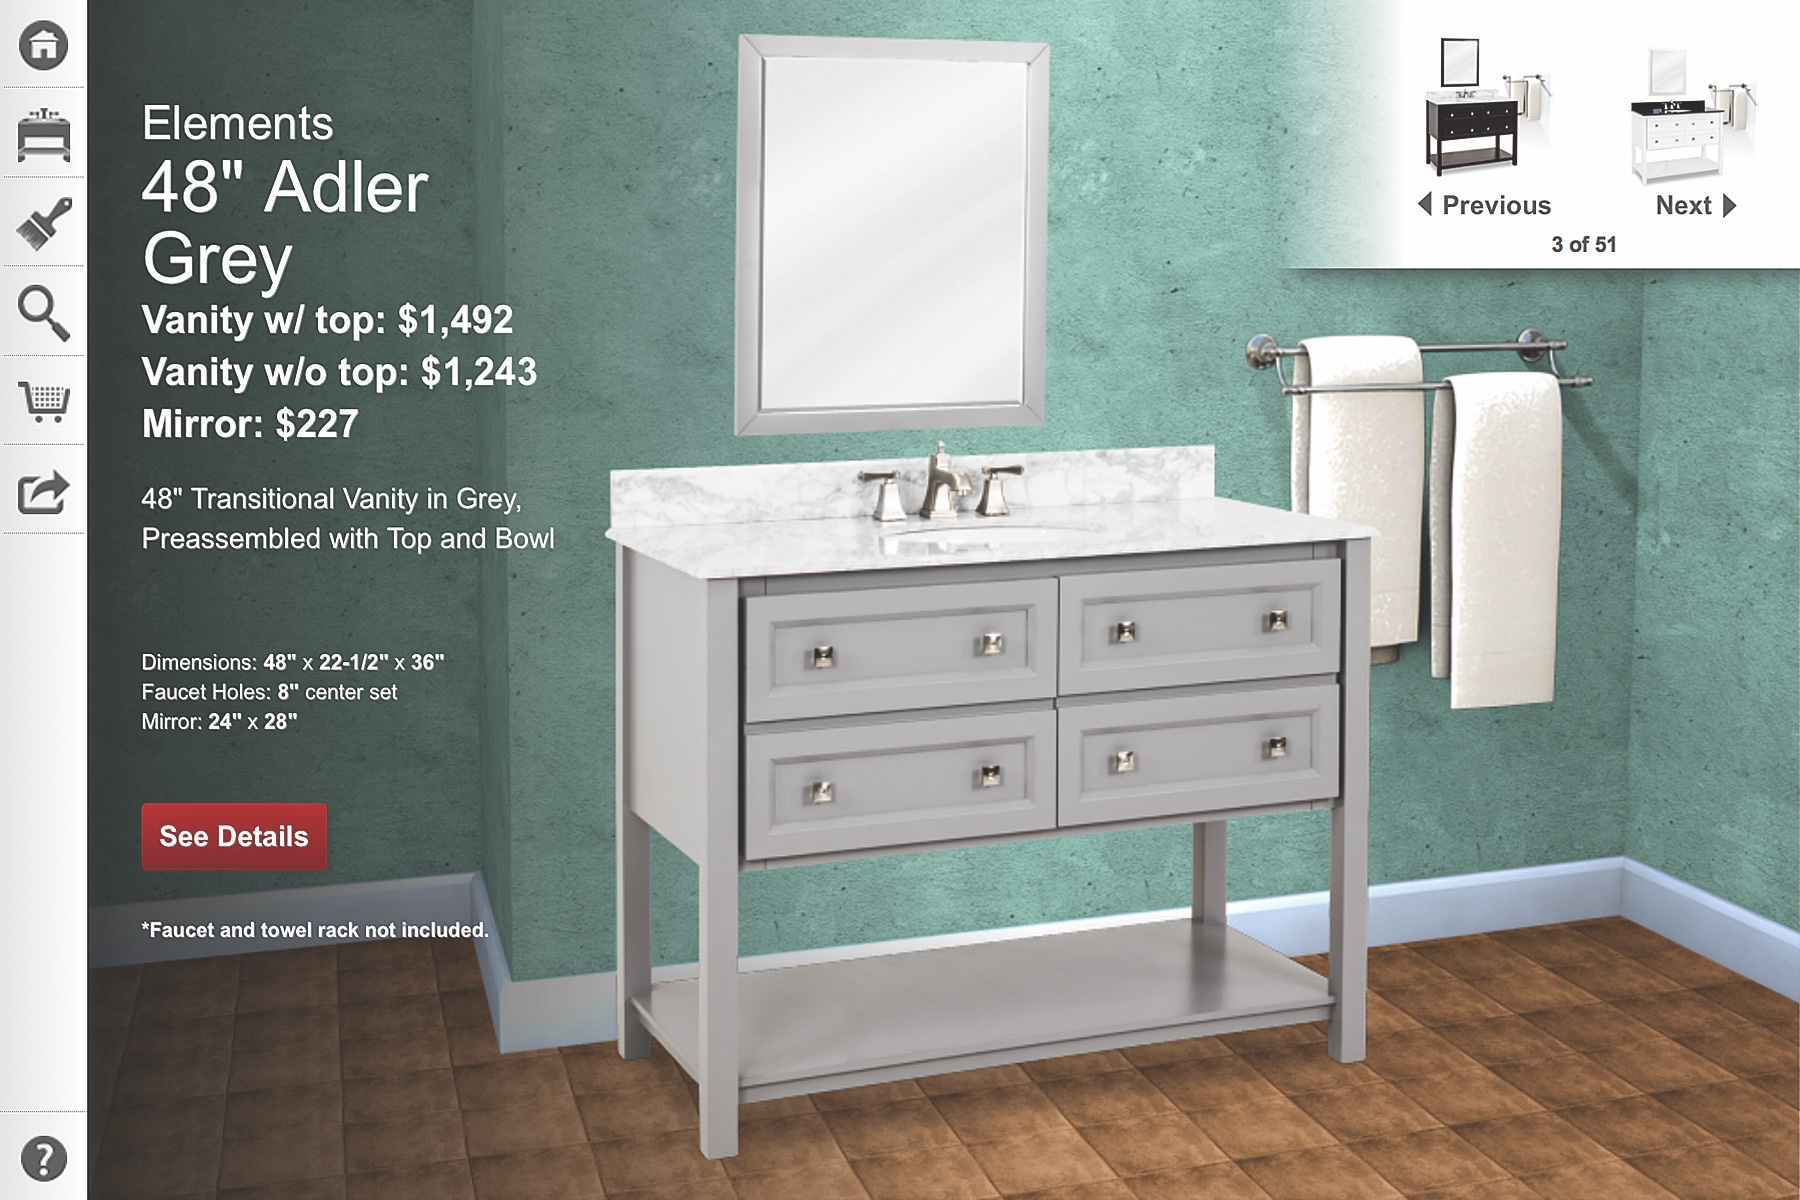 Swell Visualizer Tool Helps With Vanity Selection Remodeling Download Free Architecture Designs Scobabritishbridgeorg